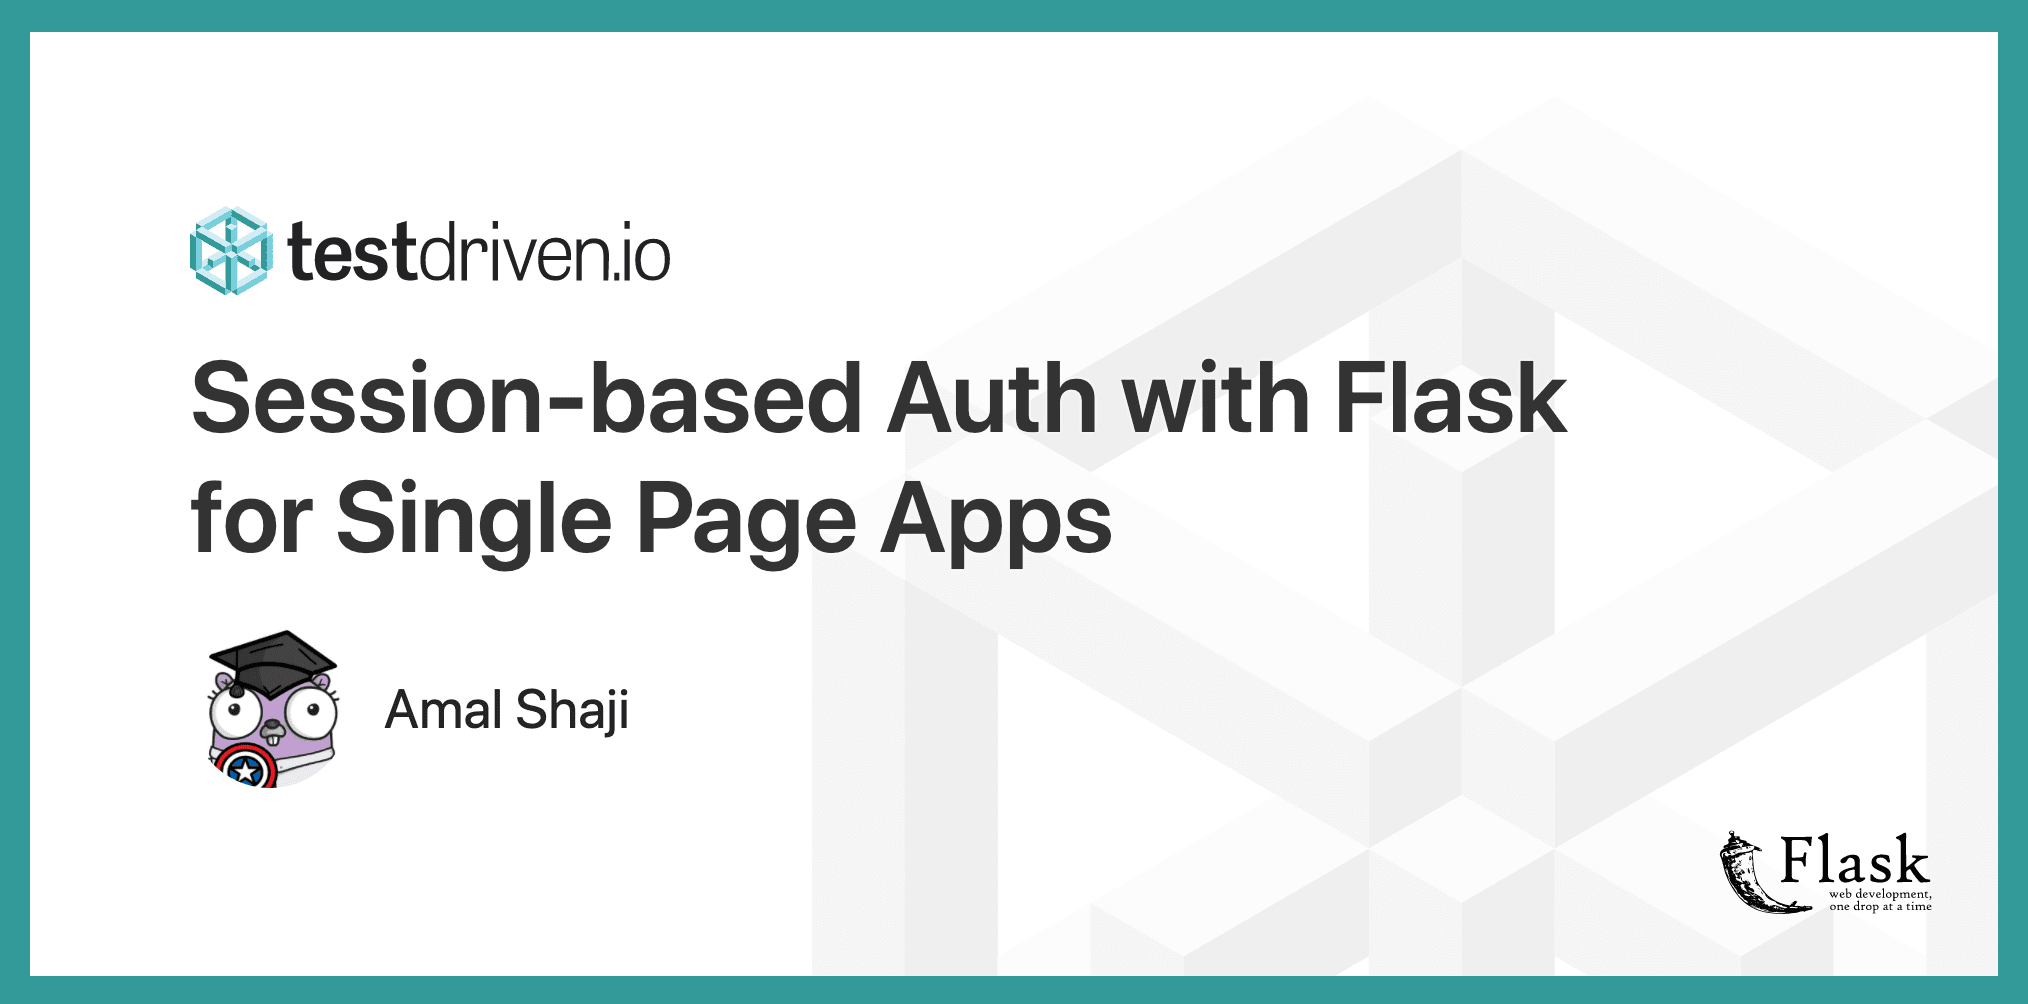 Session-based Auth with Flask for Single Page Apps